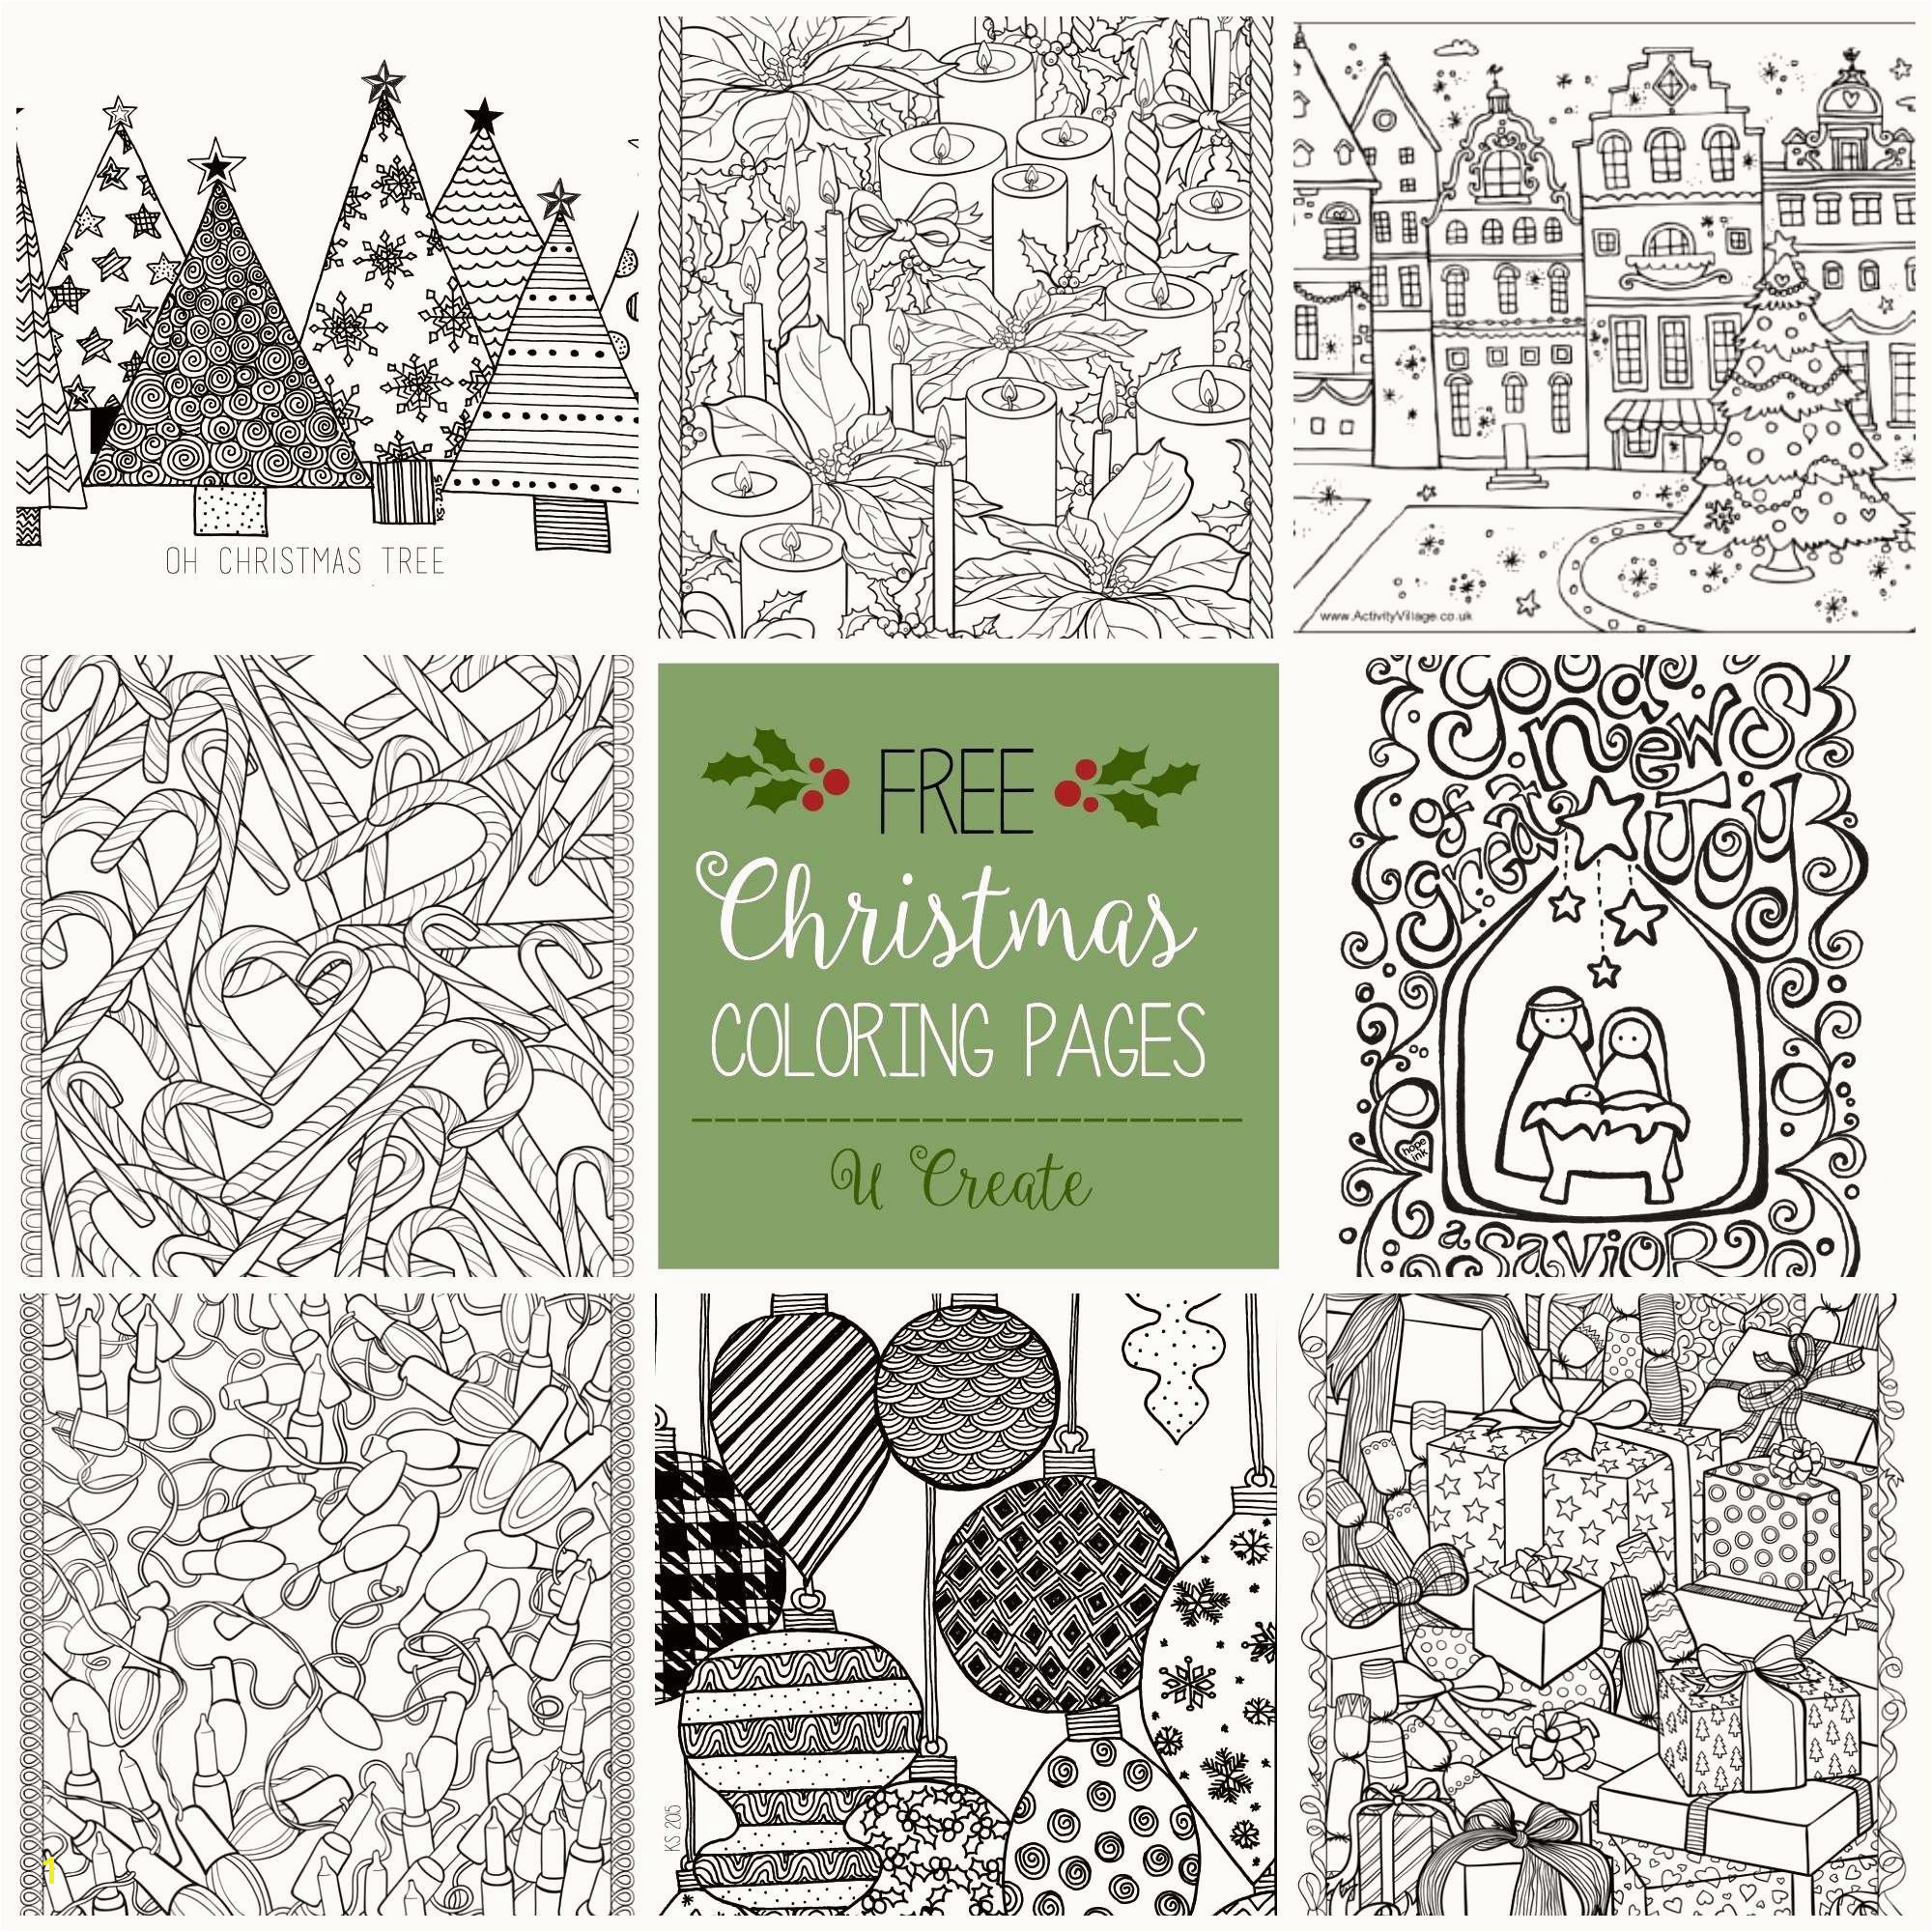 Christmas Tree Coloring Pages Free Christmas Coloring Unique Free Printable Christmas Coloring